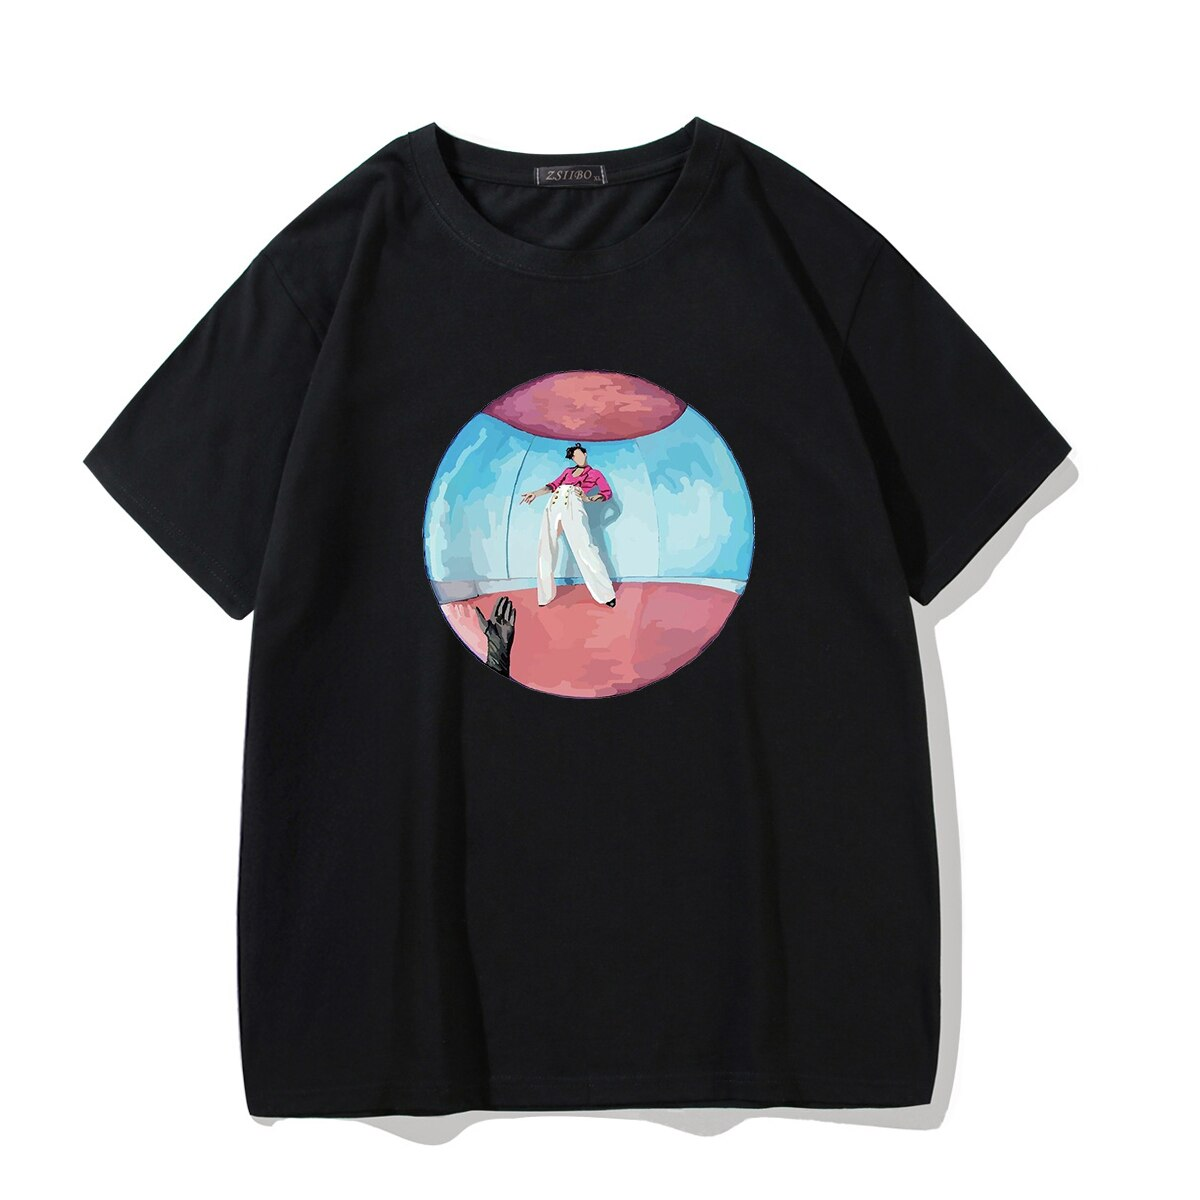 Vintage Harry Styles T-shirt For Women